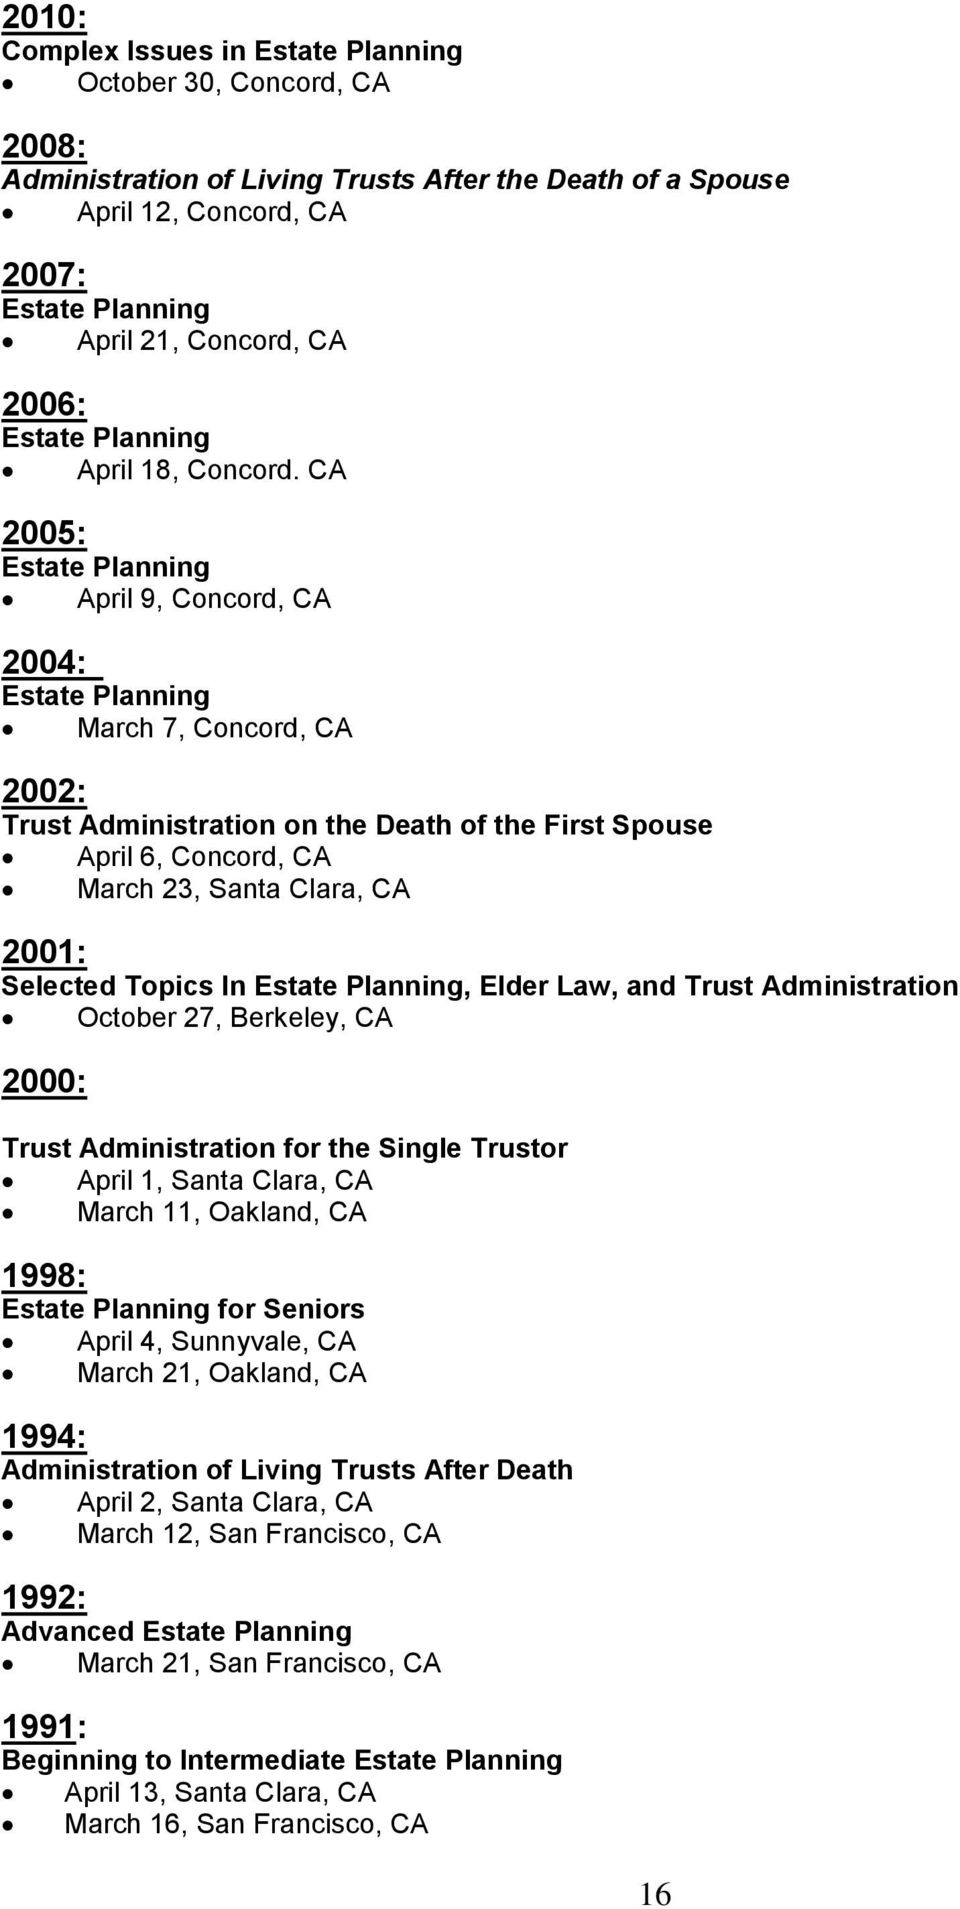 CA 2005: Estate Planning April 9, Concord, CA 2004: Estate Planning March 7, Concord, CA 2002: Trust Administration on the Death of the First Spouse April 6, Concord, CA March 23, Santa Clara, CA